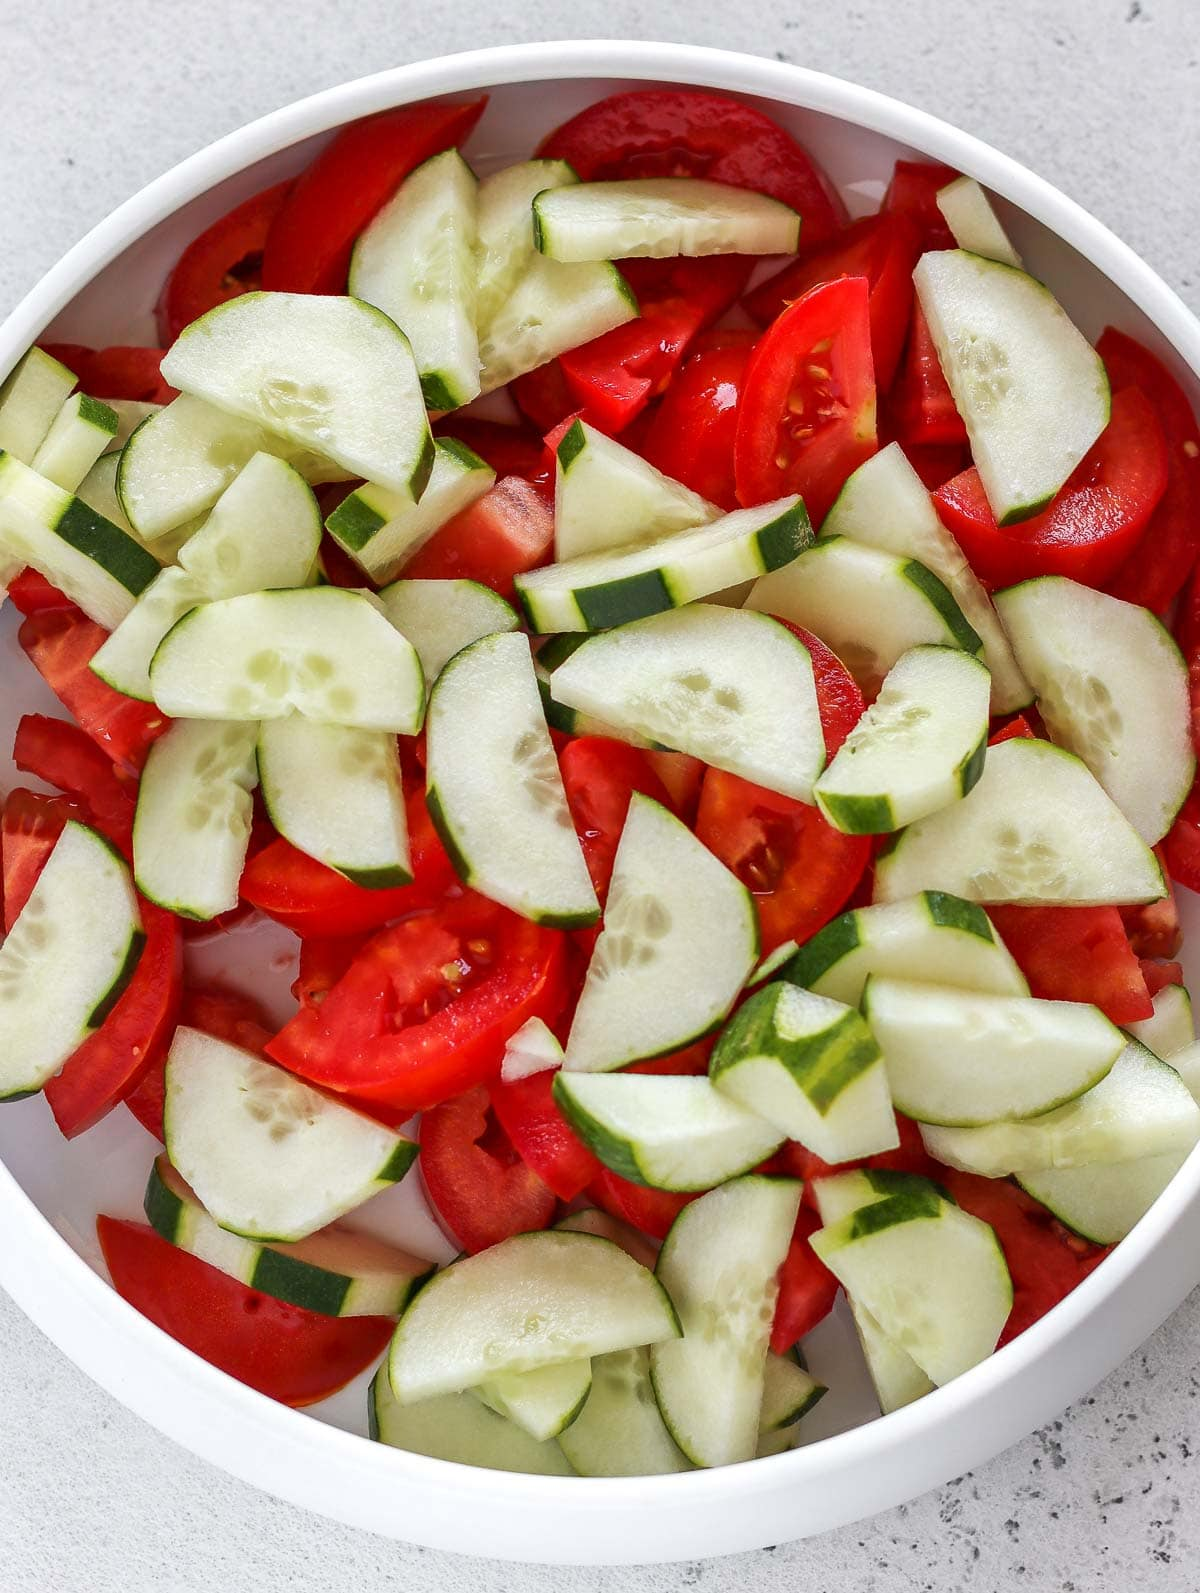 chopped cucumber and tomatoes in a bowl